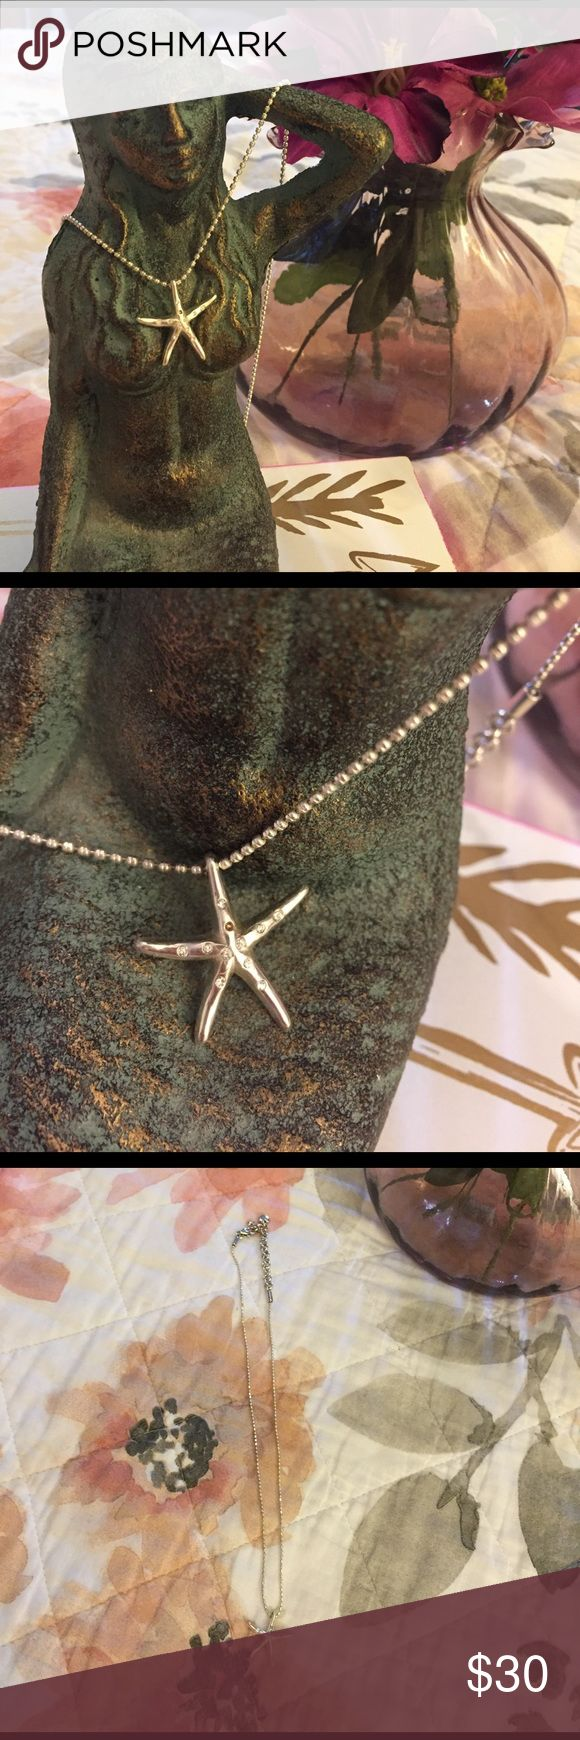 Brighton Starfish Necklace. Silver dainty chain one crystal is missing from starfish. Hardly noticeable when worn. Matching earrings for sale in separate listing, bundle and save on shippping! Brighton Jewelry Necklaces